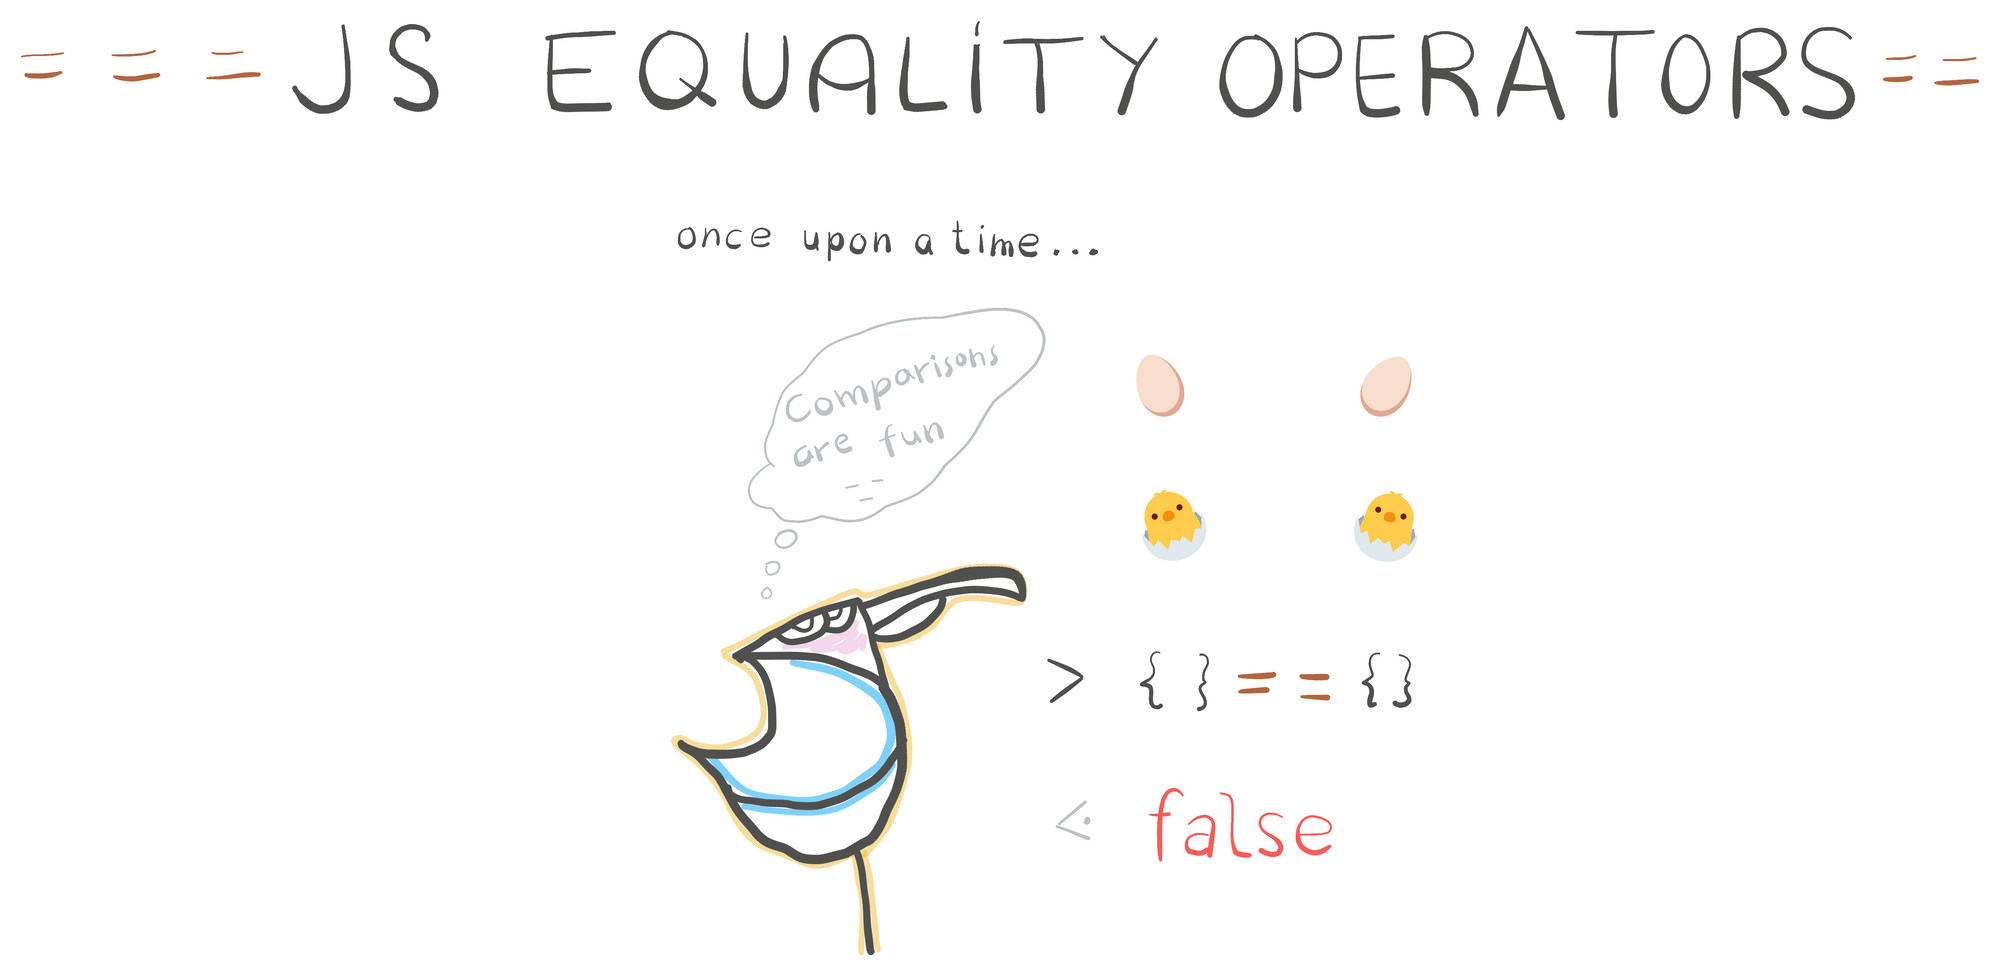 JavaScript Equality Operators Explained Visually